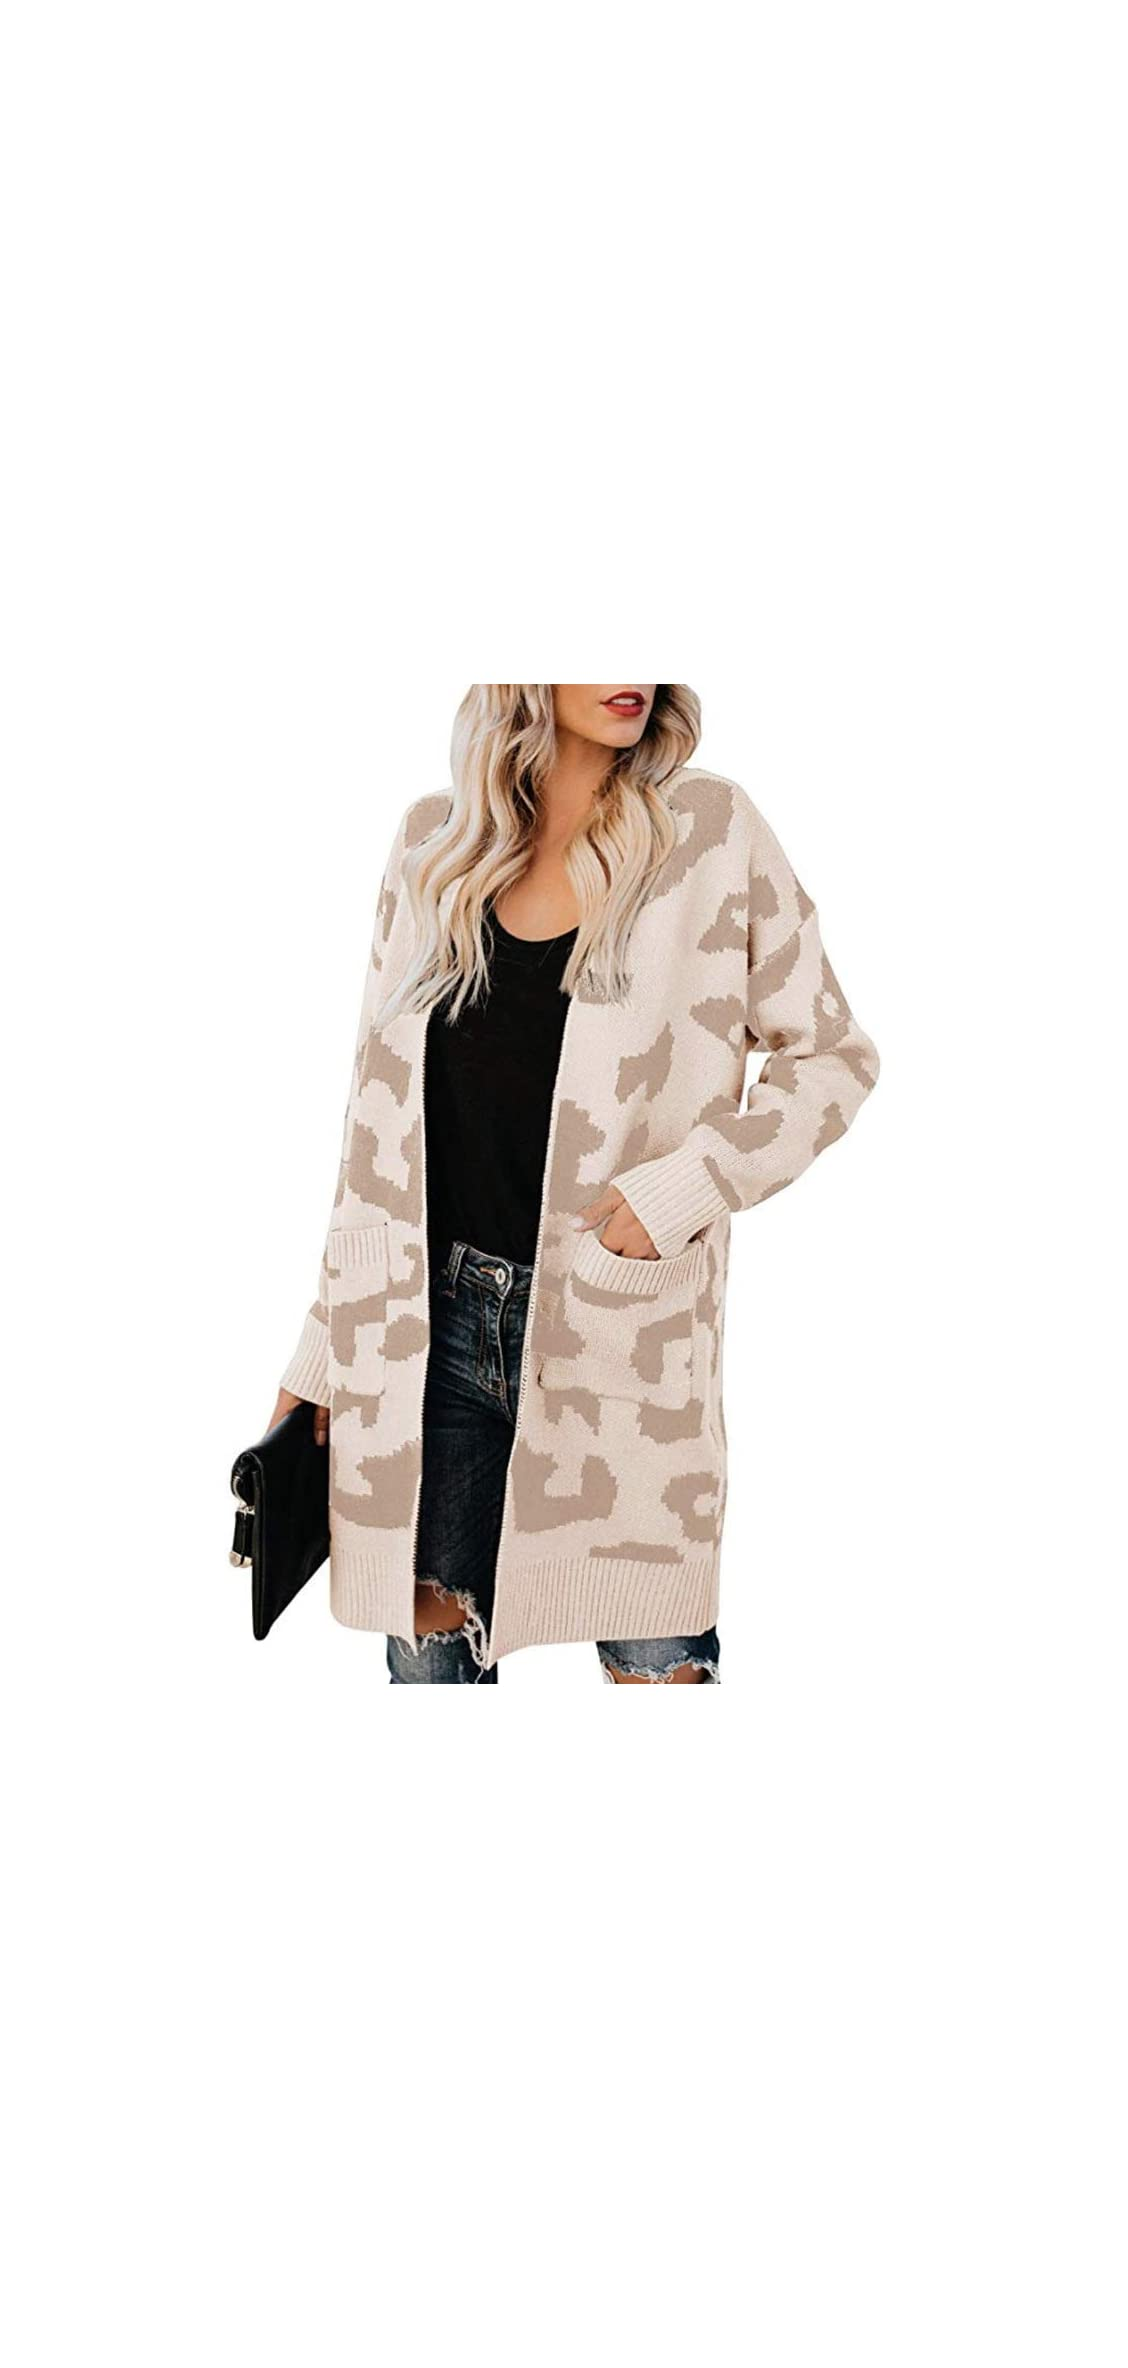 Womens Sweaters Fashion Leopard Print Open Front Cardigan With